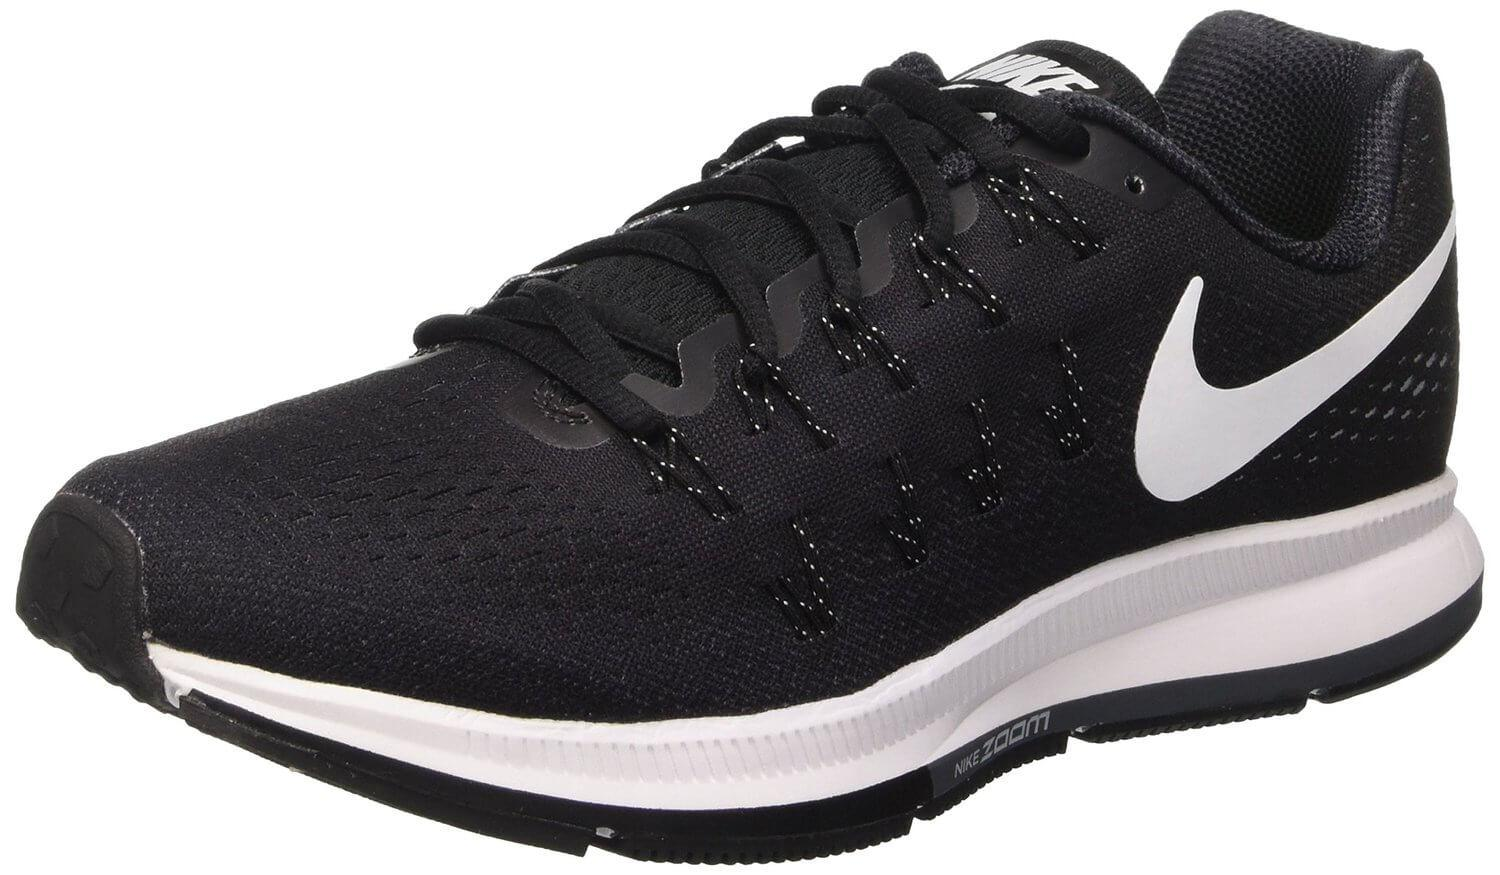 05416a721f8eb the Nike Air Zoom Pegasus 33 is the latest in the long-running line that ...